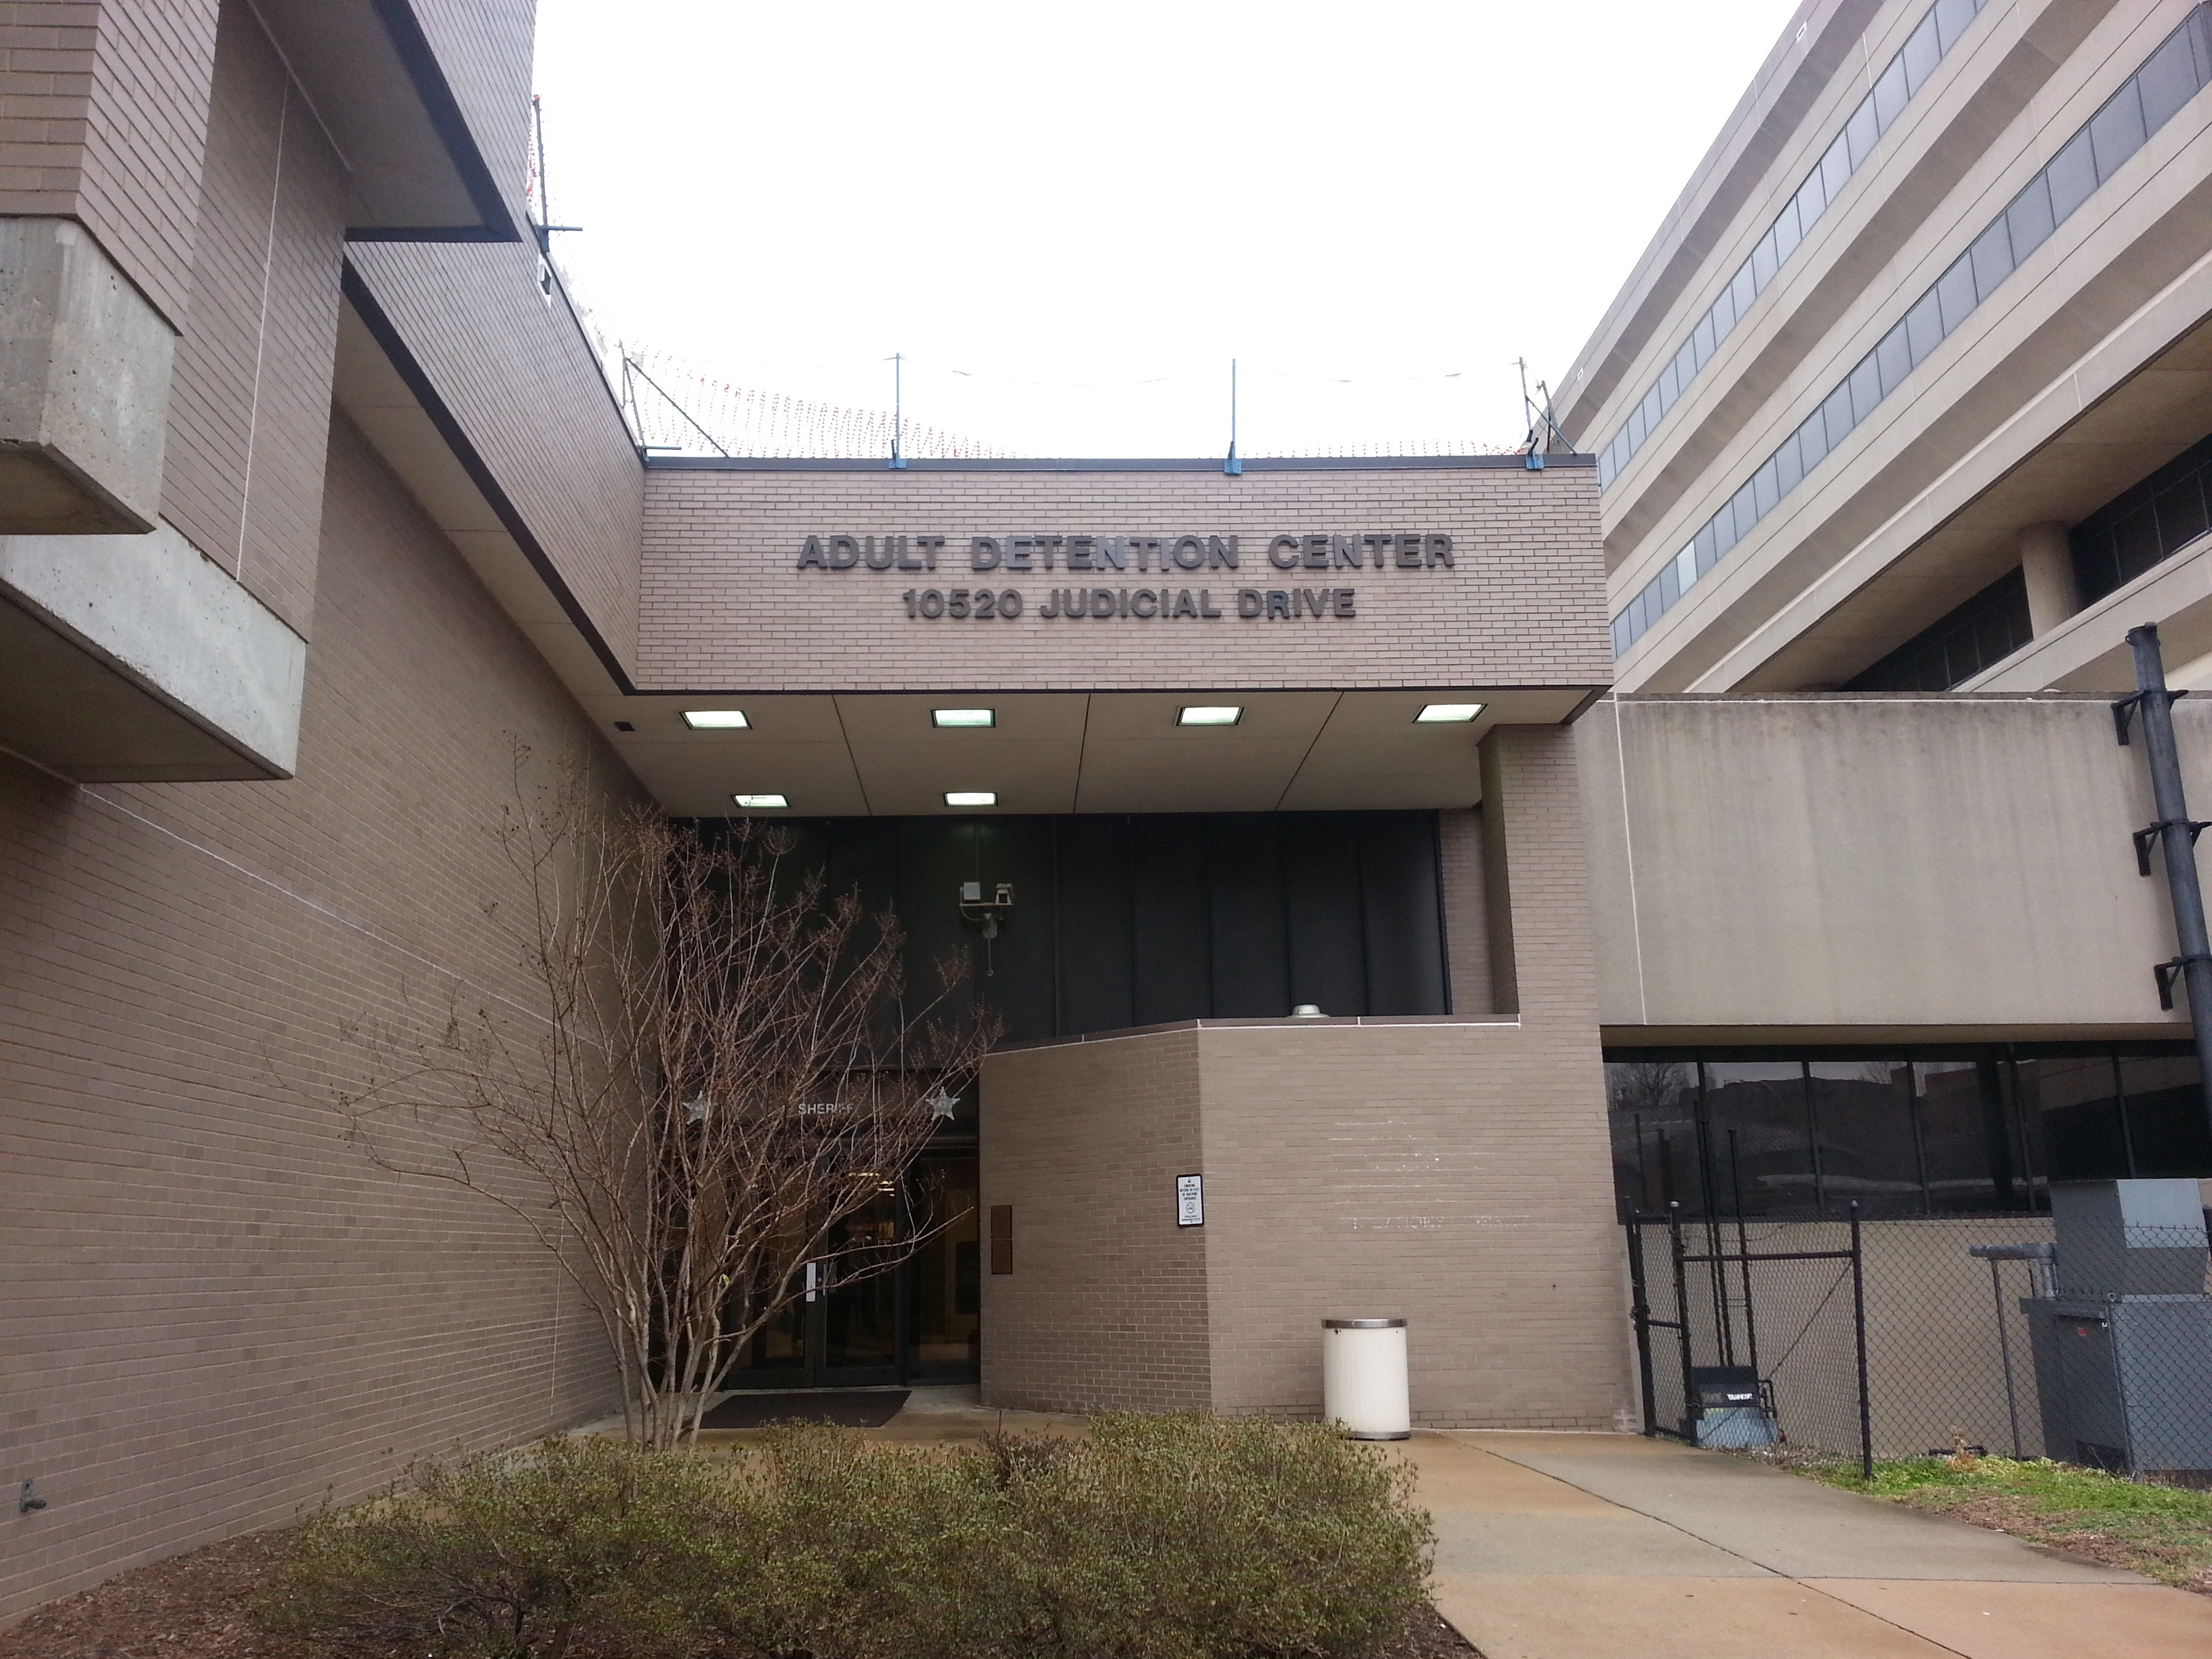 Fairfax County Adult Detention Center (United States of America)